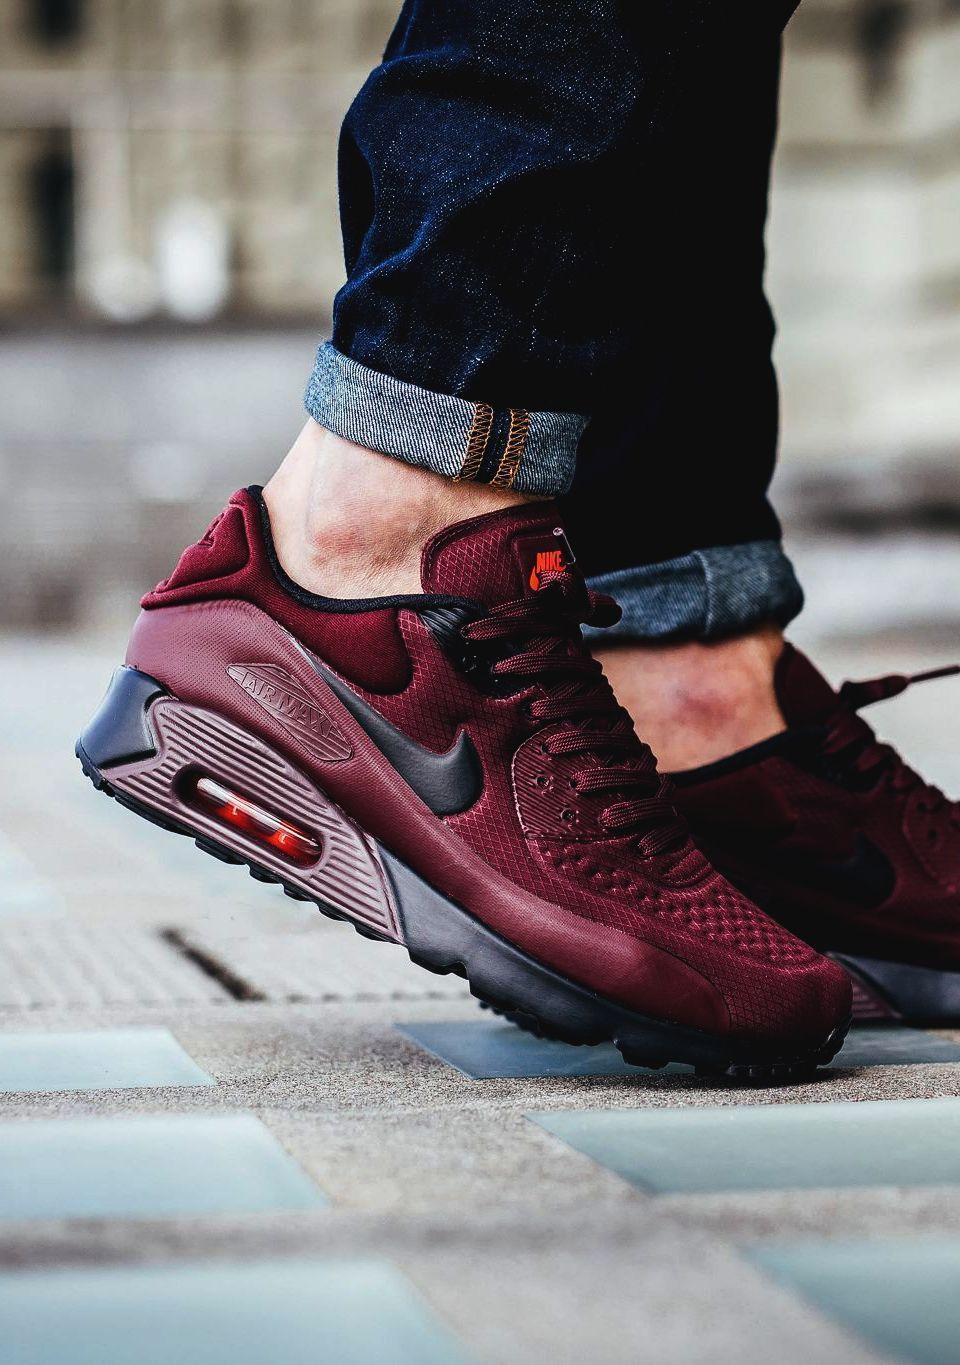 sale retailer 8969c d50f7 shoes ,sneaker, sneakers, kicks, sole, nike, air max ,air max 90 ,am90, red  ,swoosh ,fashion ,style ,streetwear ,sporty ,sportswear ,menswear ,men  fashion ...